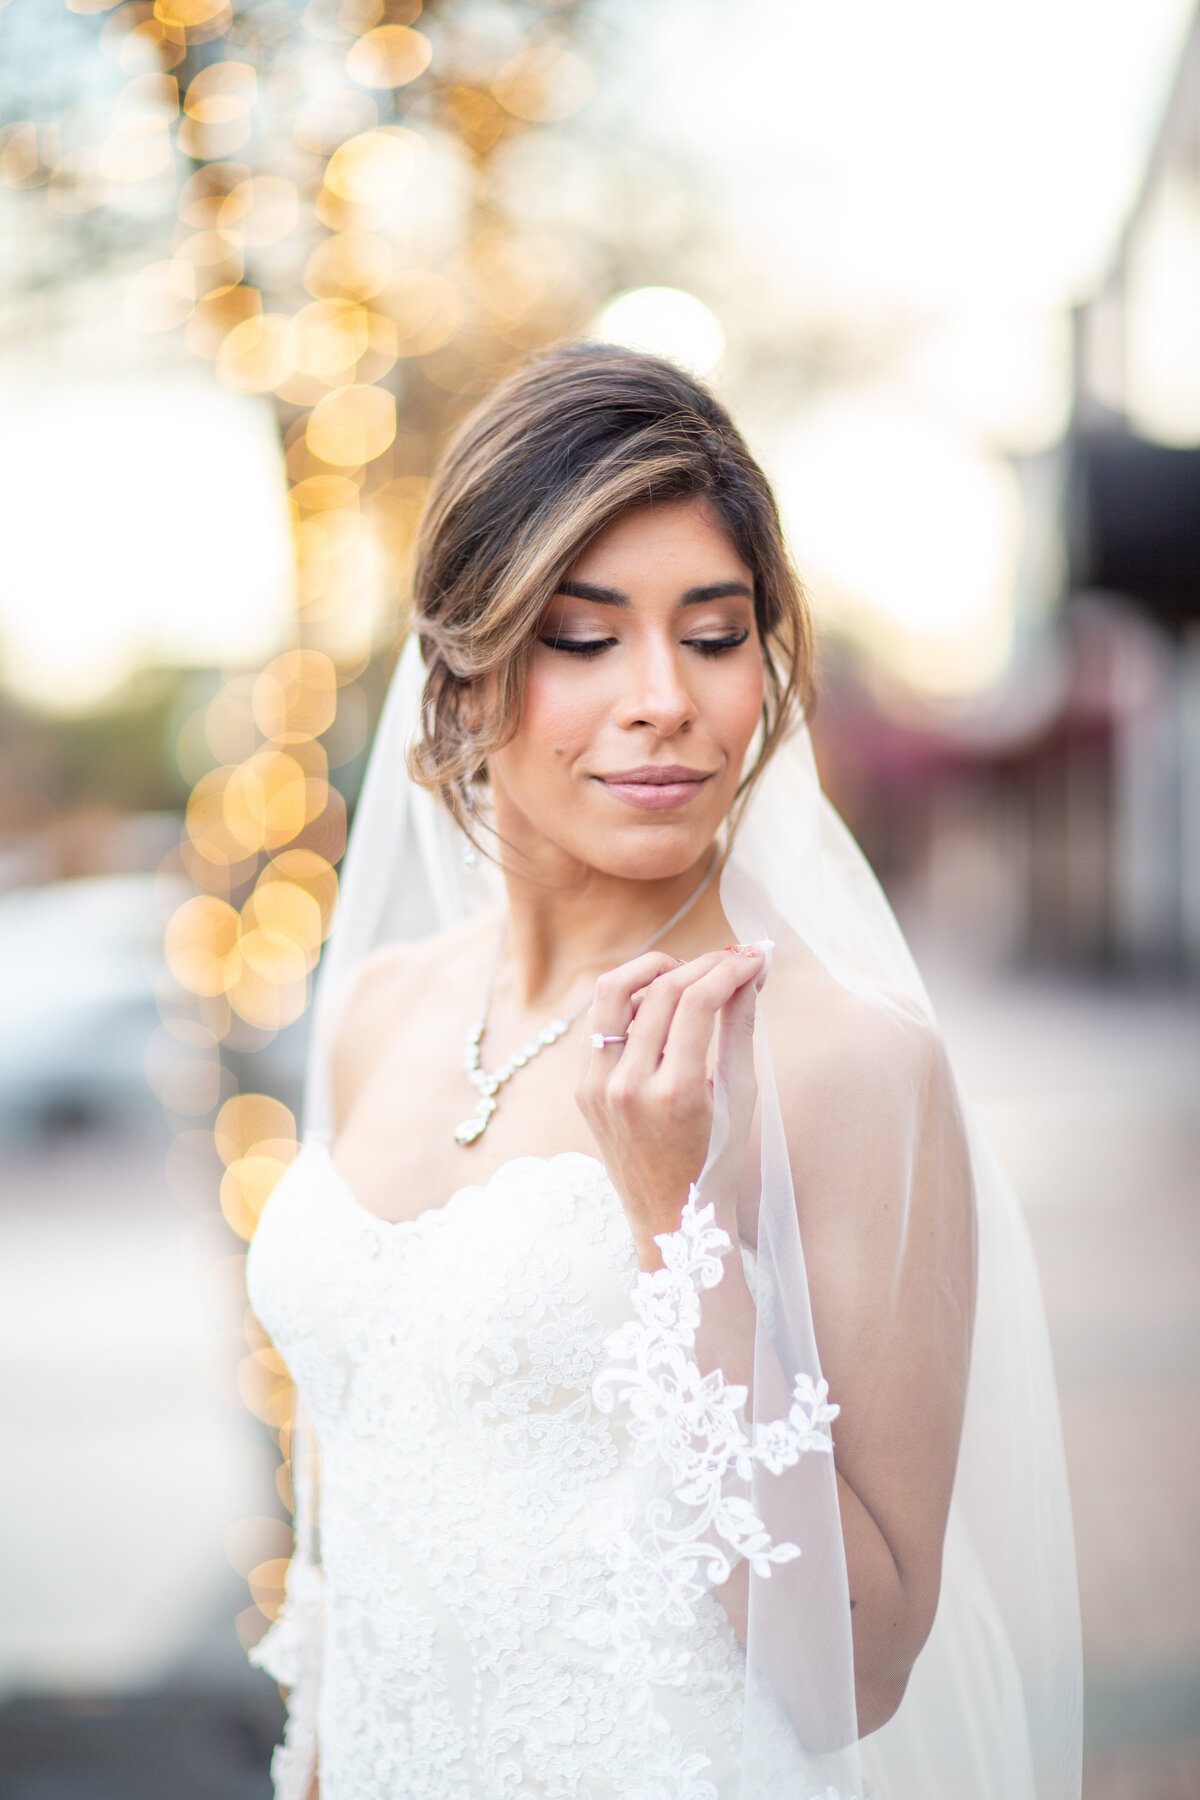 Gorgeous City Bridal Portraits in Sugarland, TX